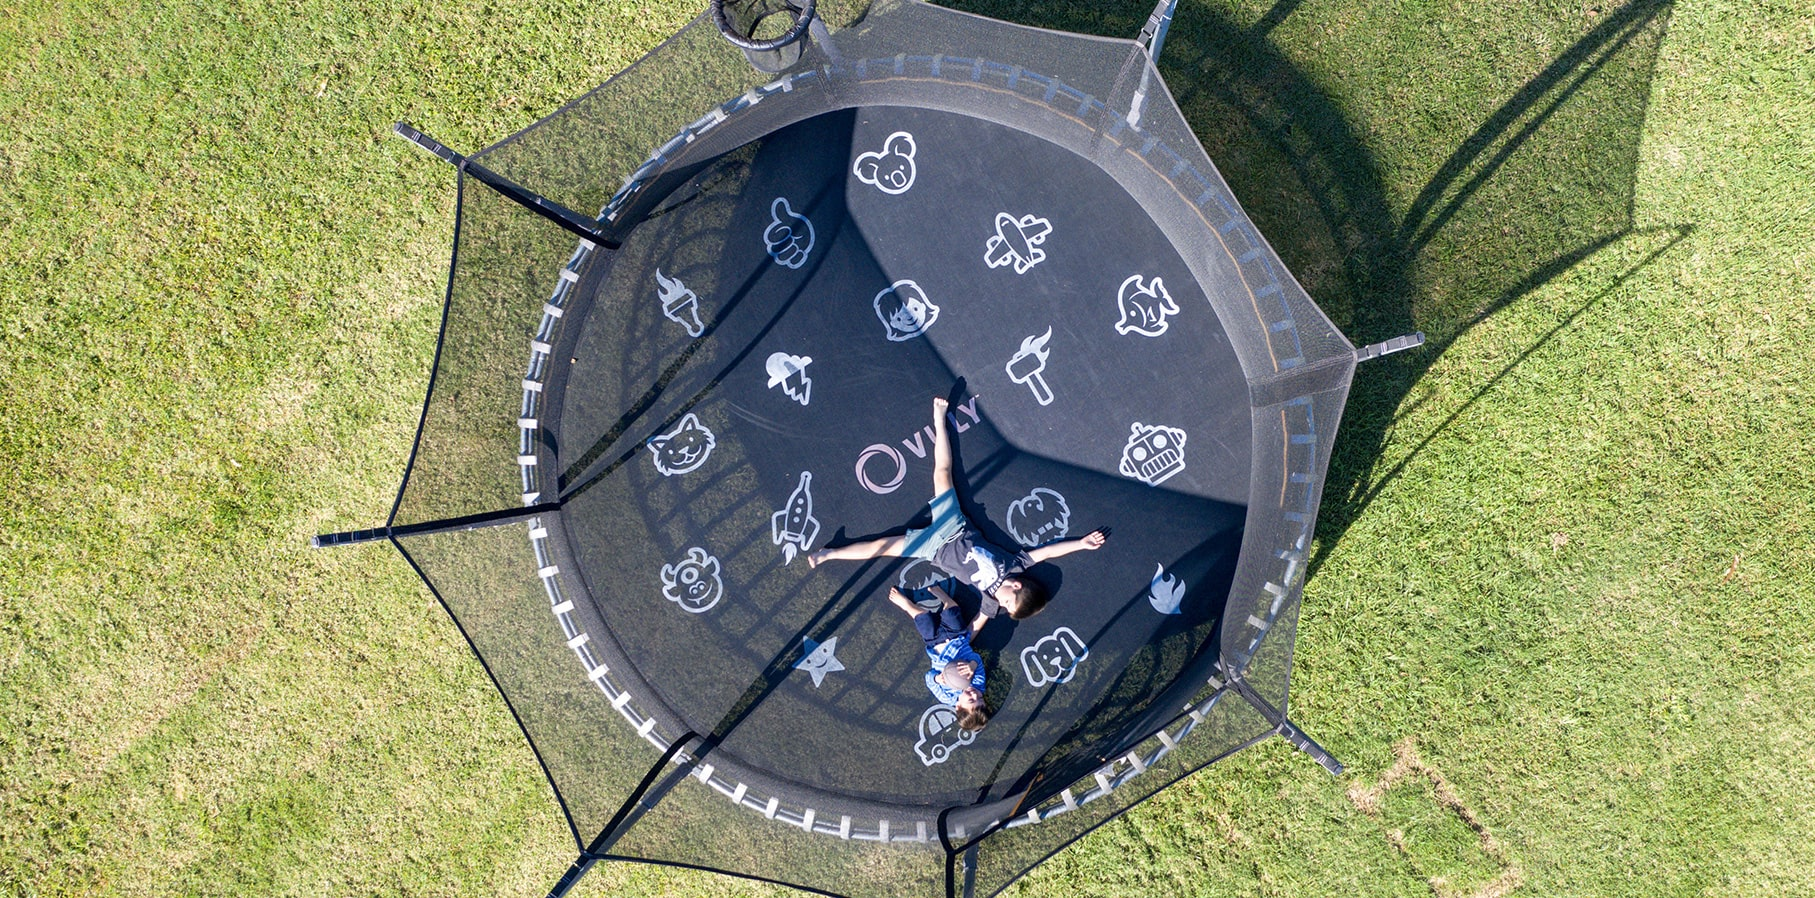 Looking down on boys on Thunder trampoline